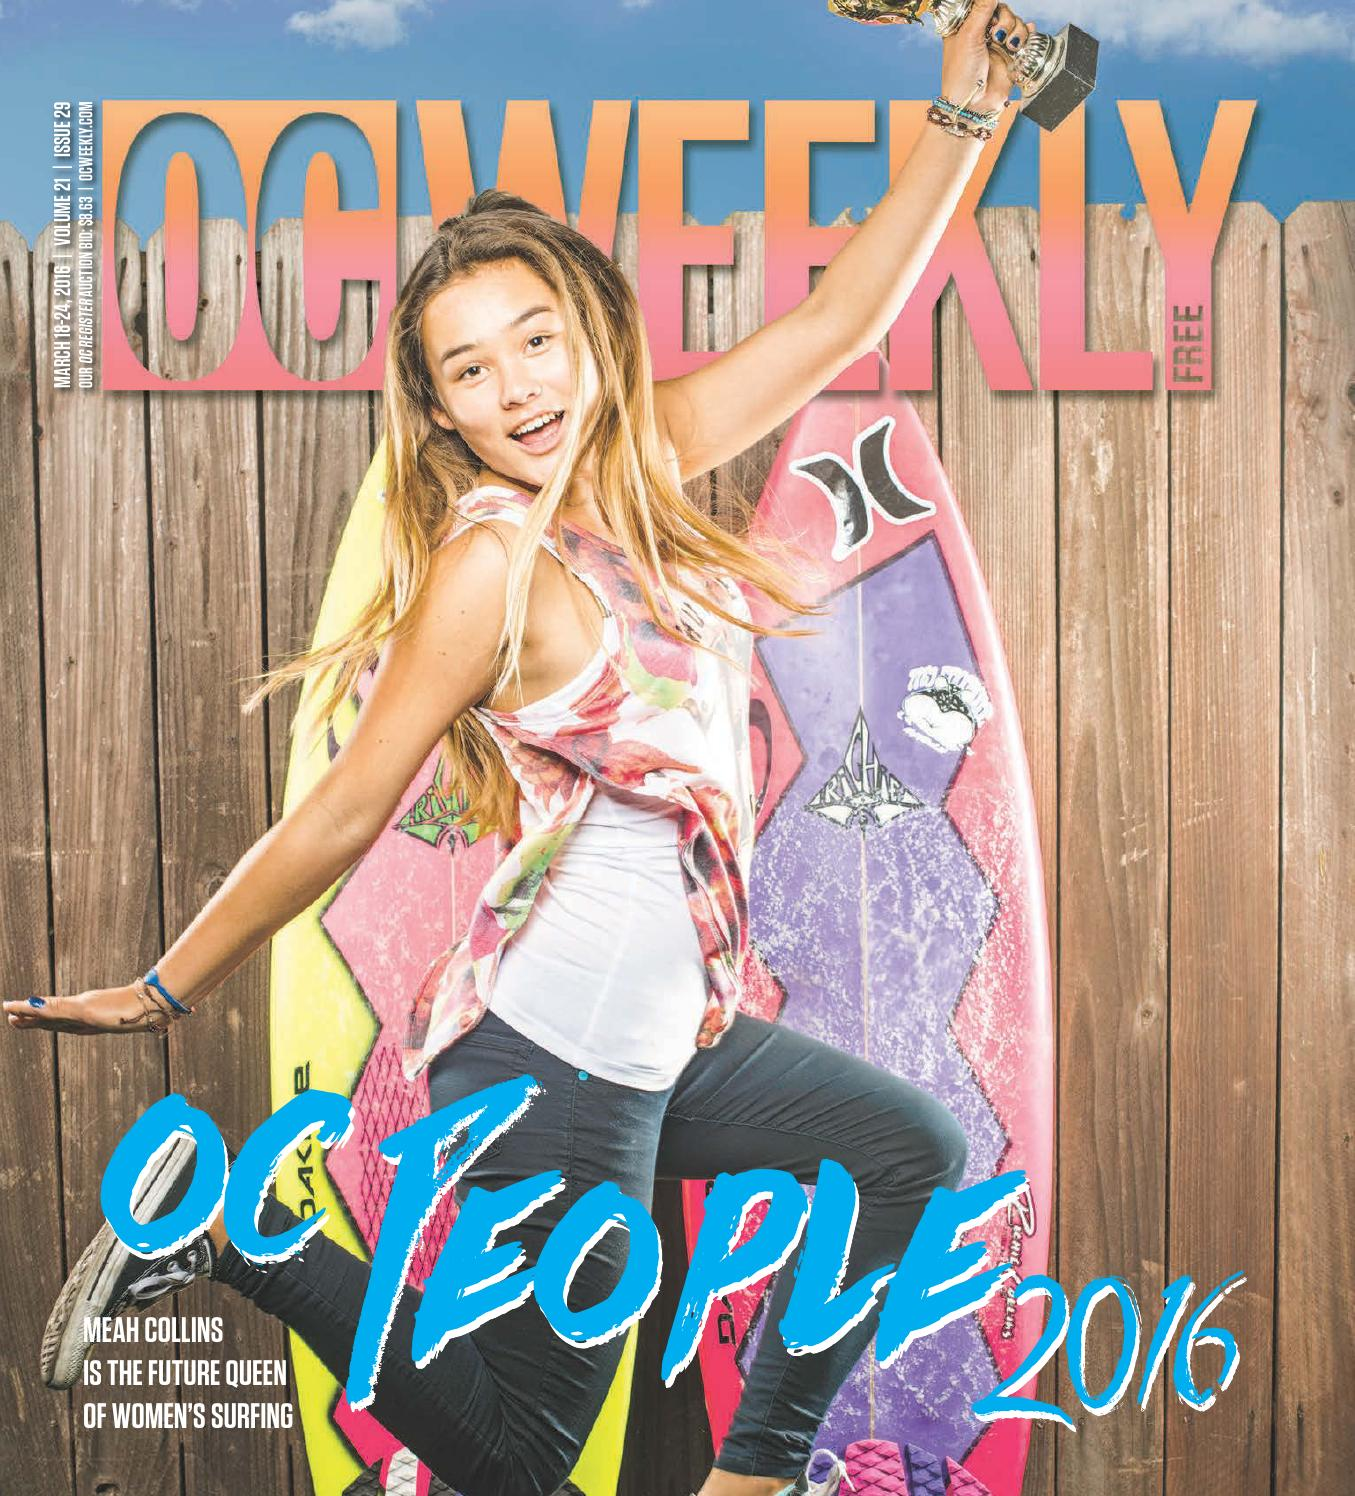 March 17, 2016 – OC Weekly by Duncan McIntosh Company - issuu